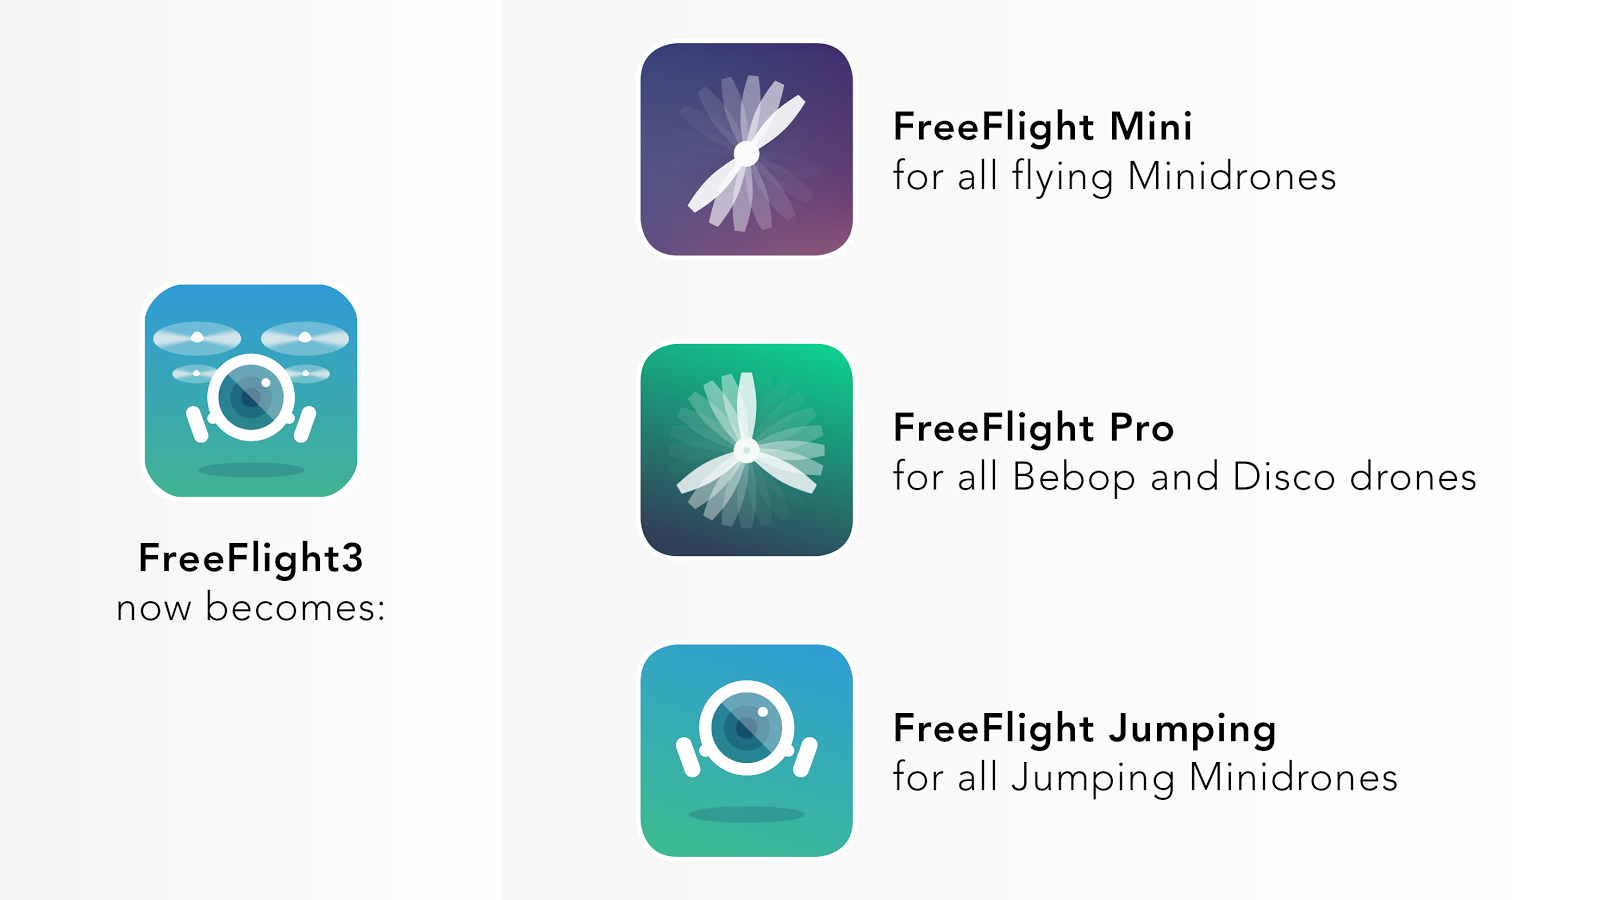 FreeFlight Jumping: captura de pantalla